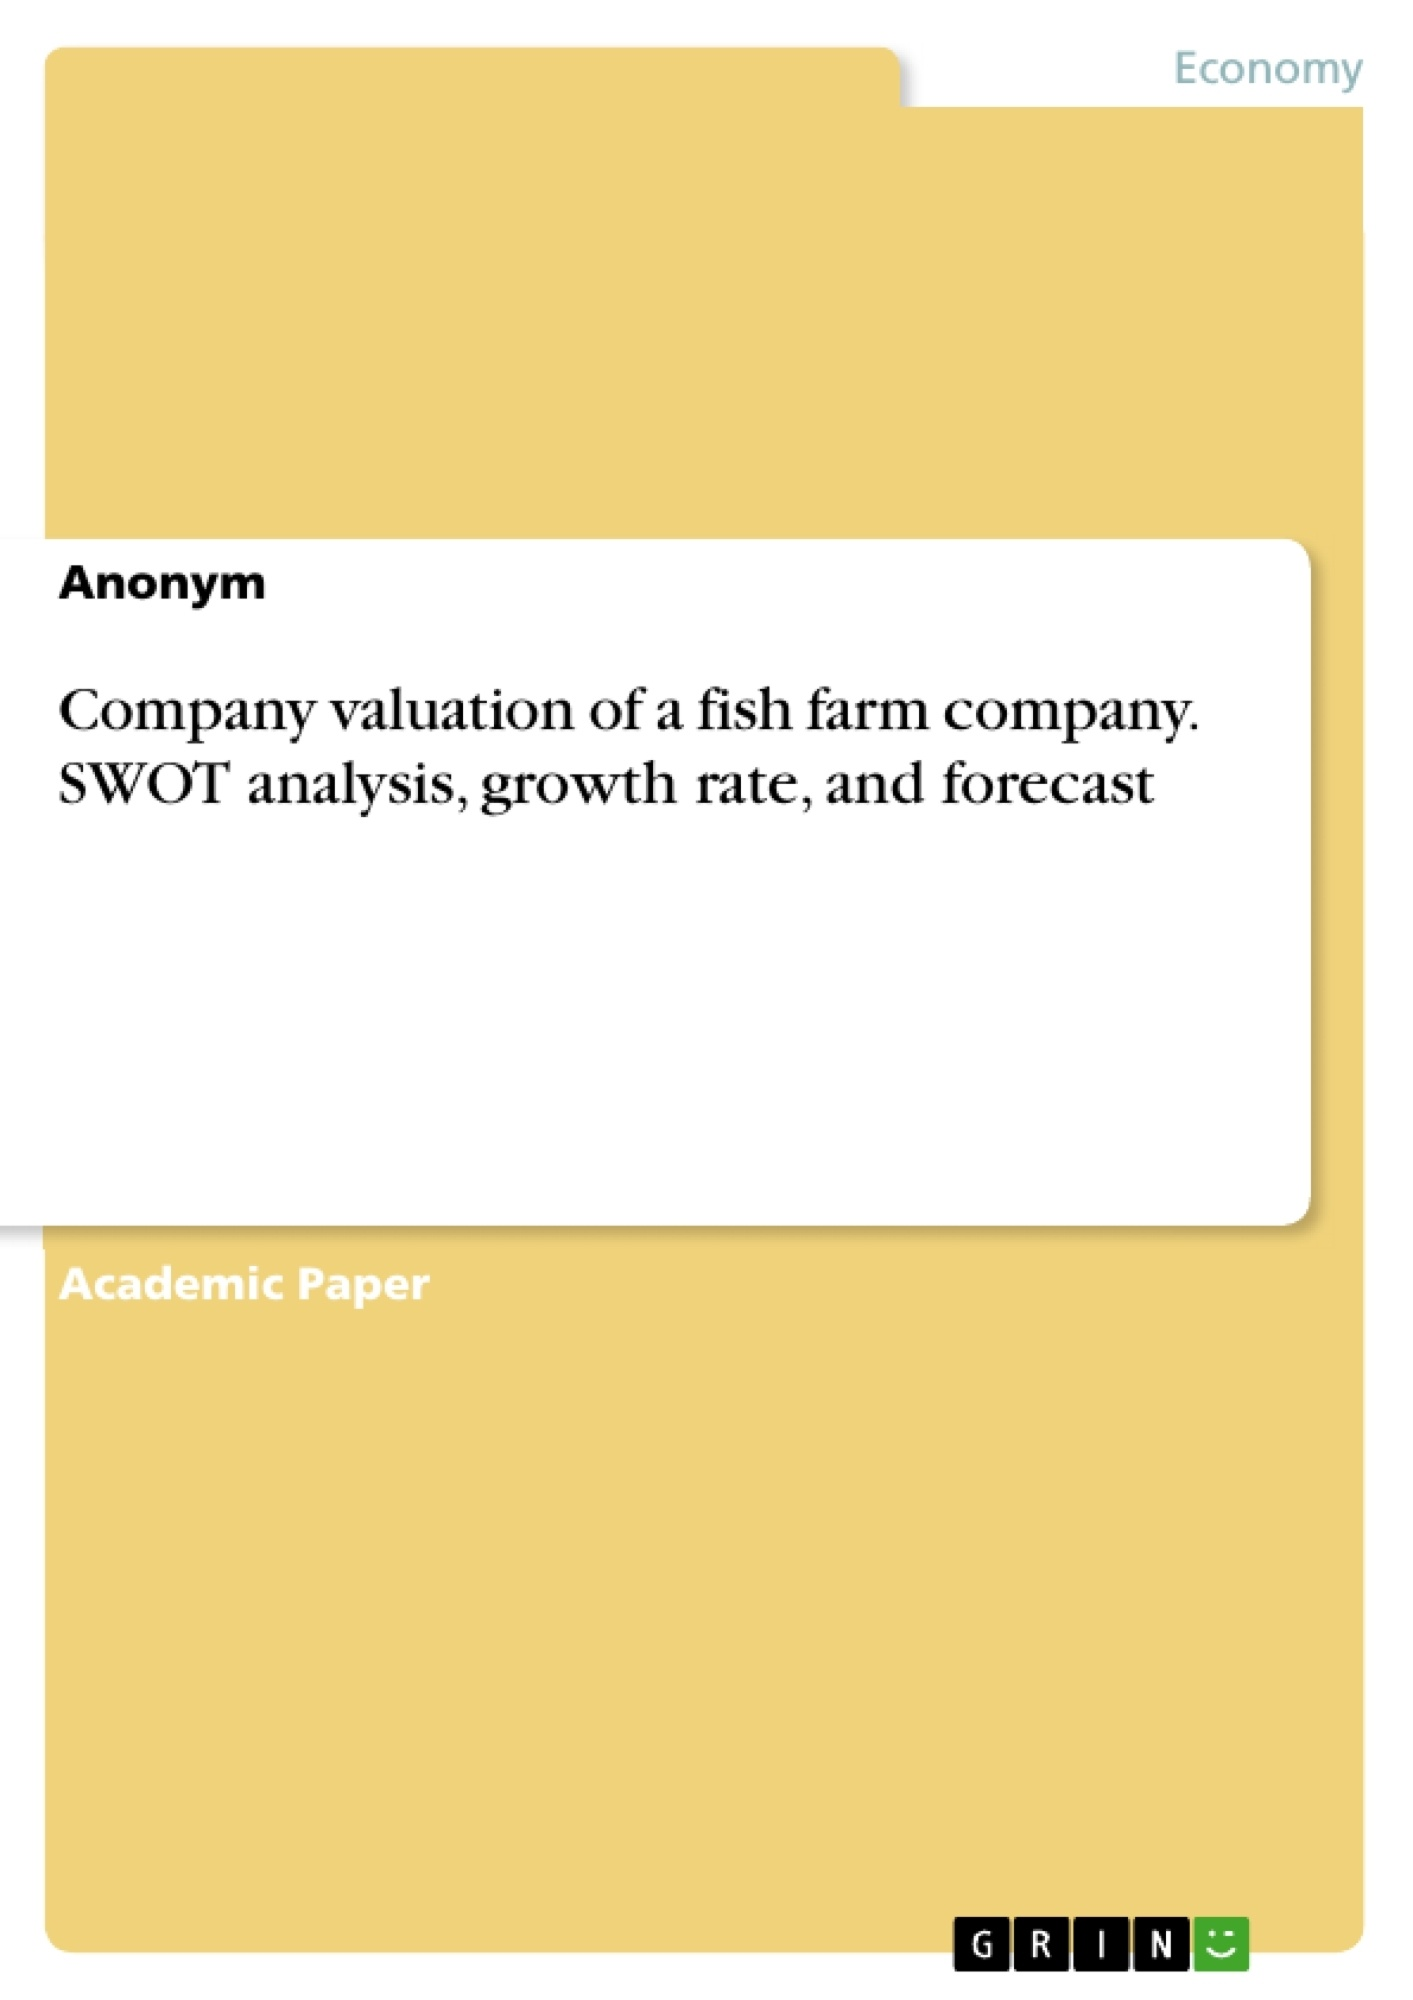 Title: Company valuation of a fish farm company. SWOT analysis, growth rate, and forecast